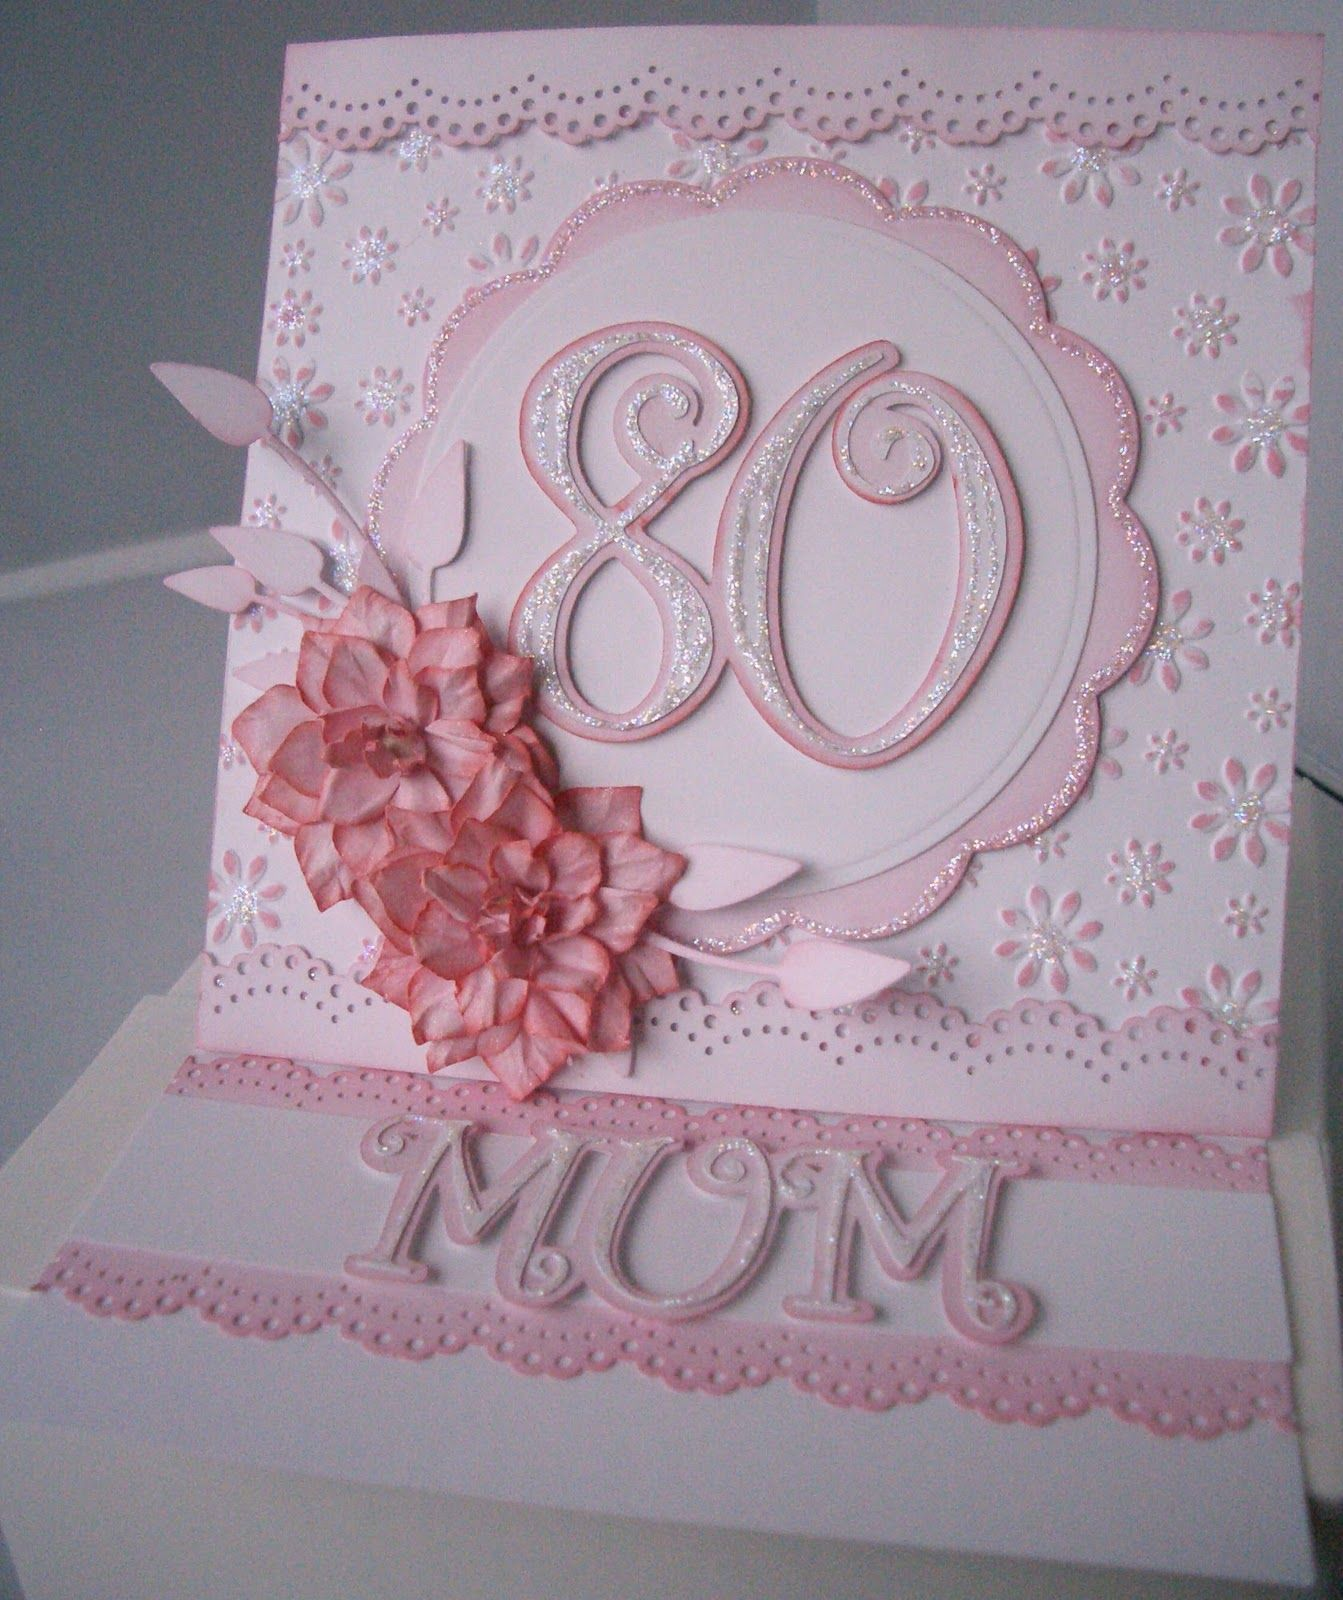 A Friend Asked Me To Make An 80th Birthday Card For Her Mum The Only Thing That She Said W Birthday Cards For Women 80th Birthday Cards Special Birthday Cards